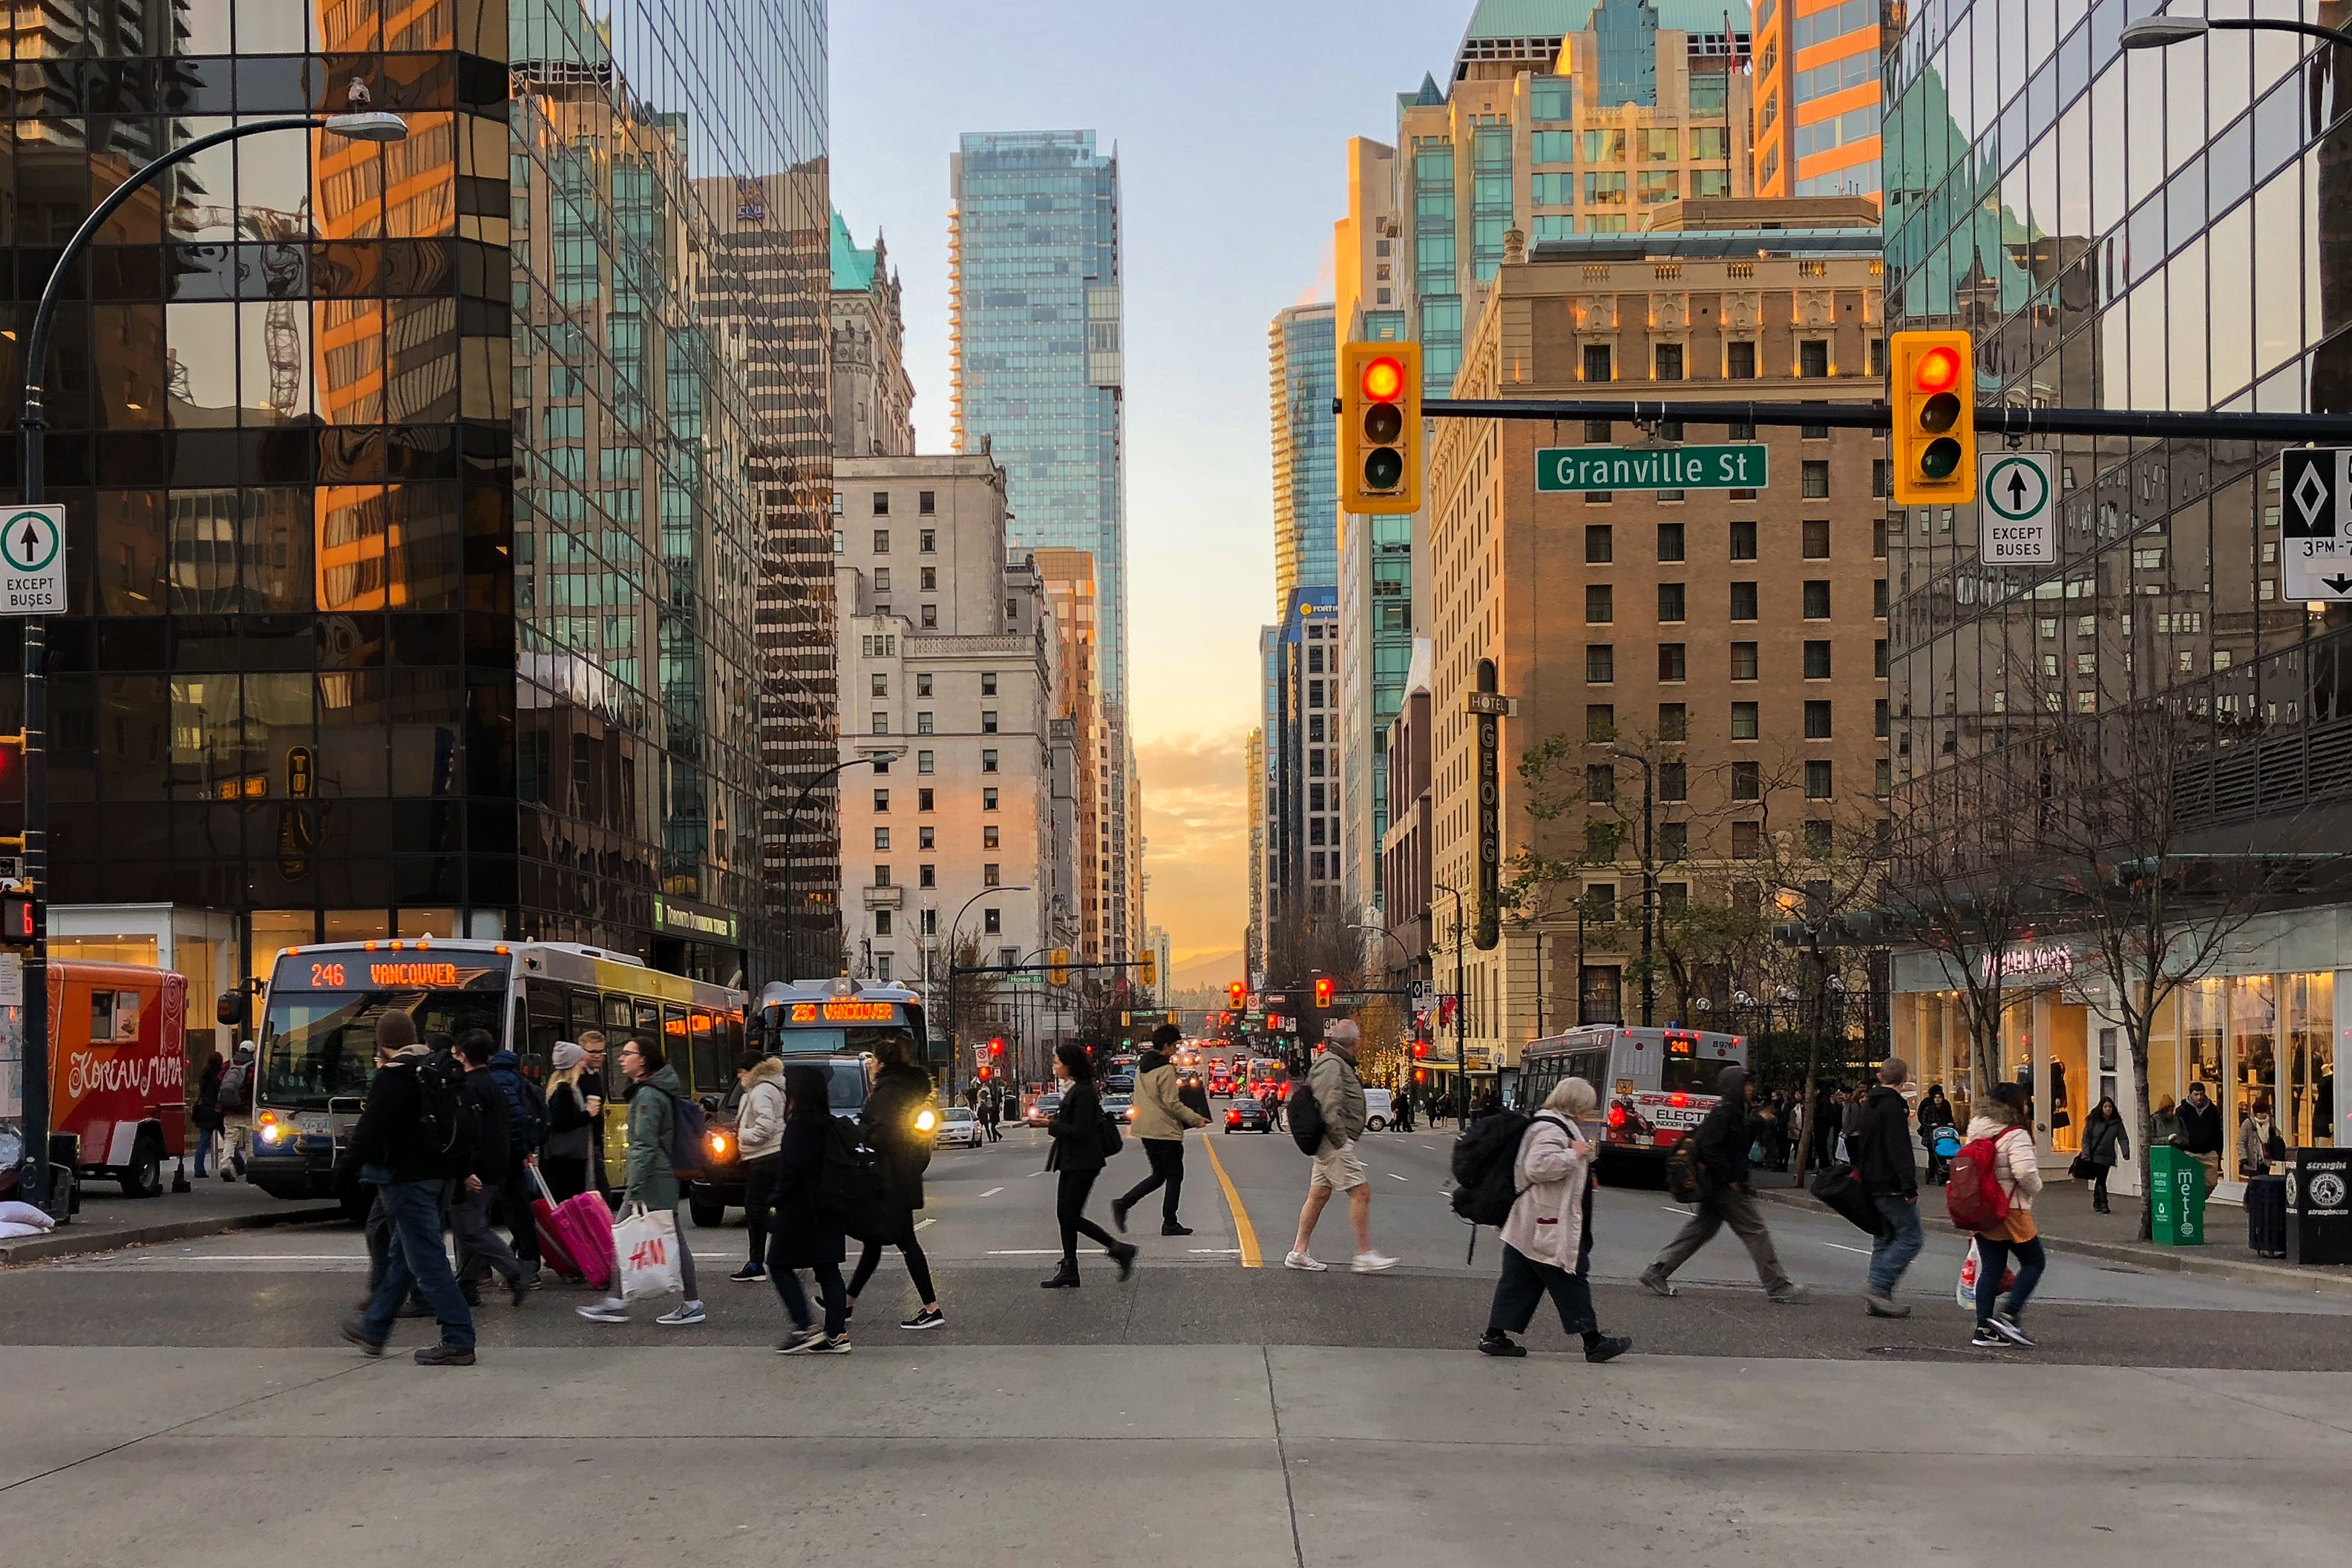 Photo of people crossing a busy intersection surrounded by tall towers